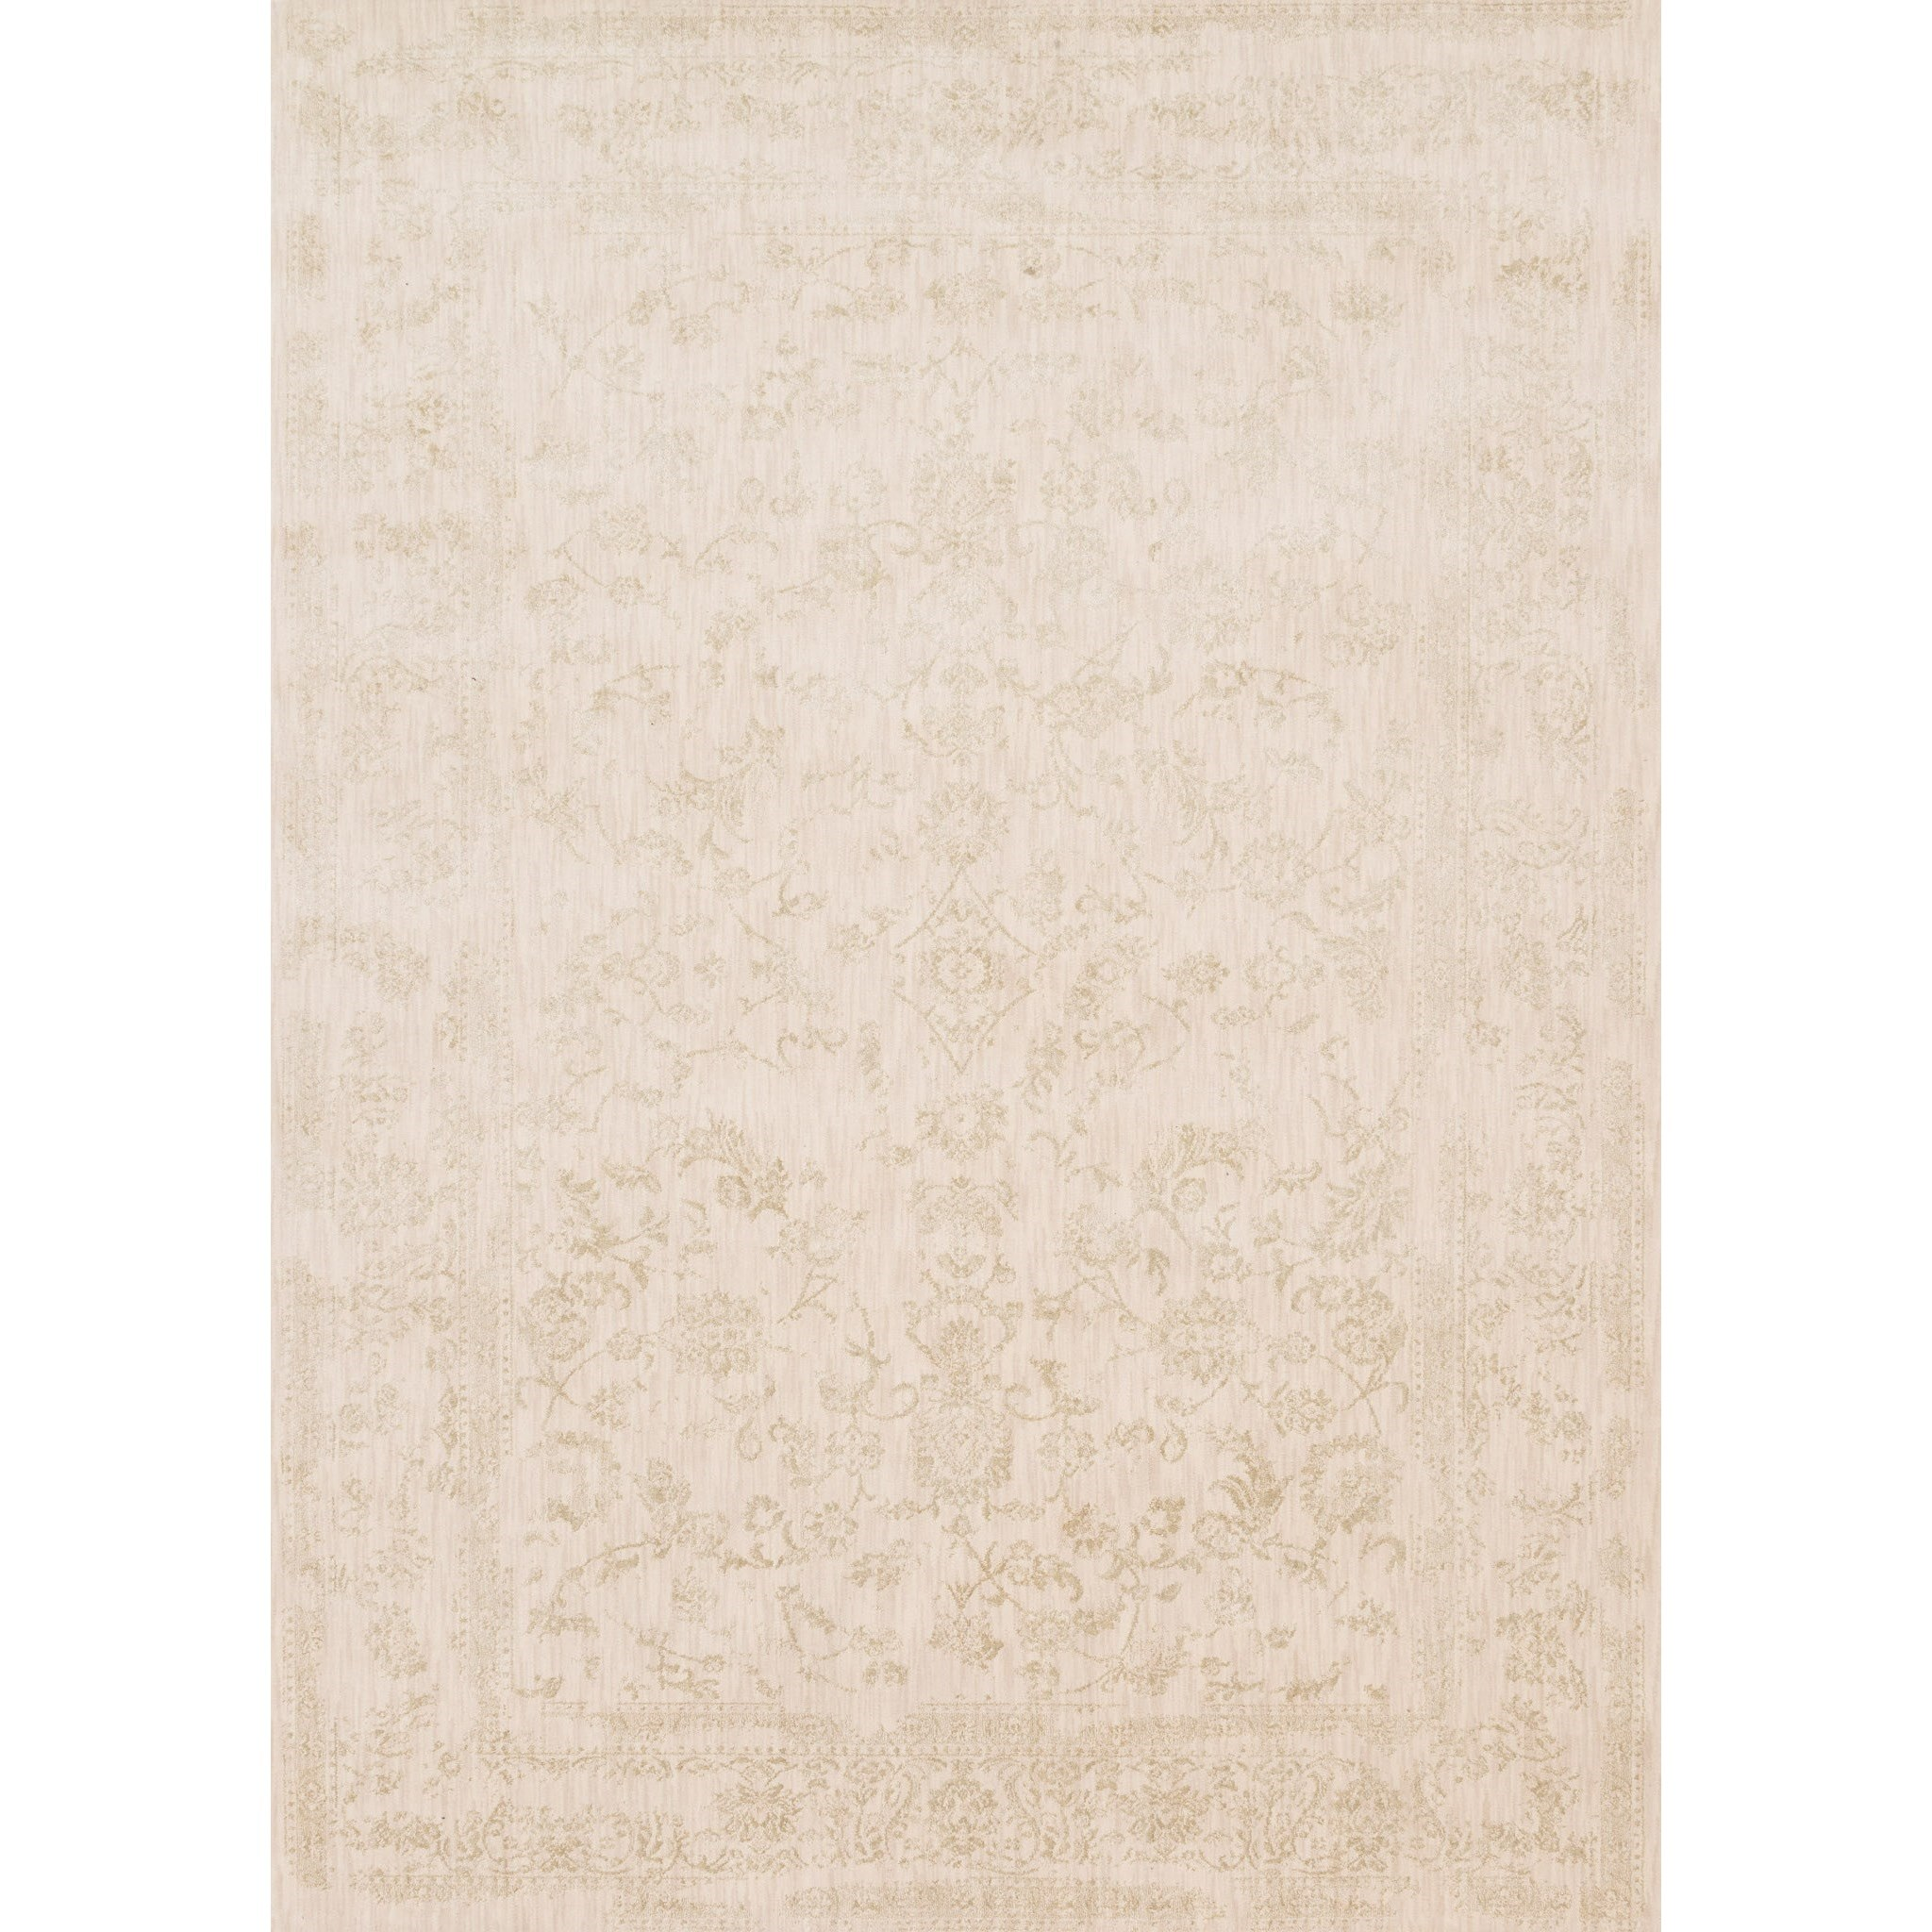 "Florence 9'-6"" X 13' Area Rug by Loloi Rugs at Sprintz Furniture"